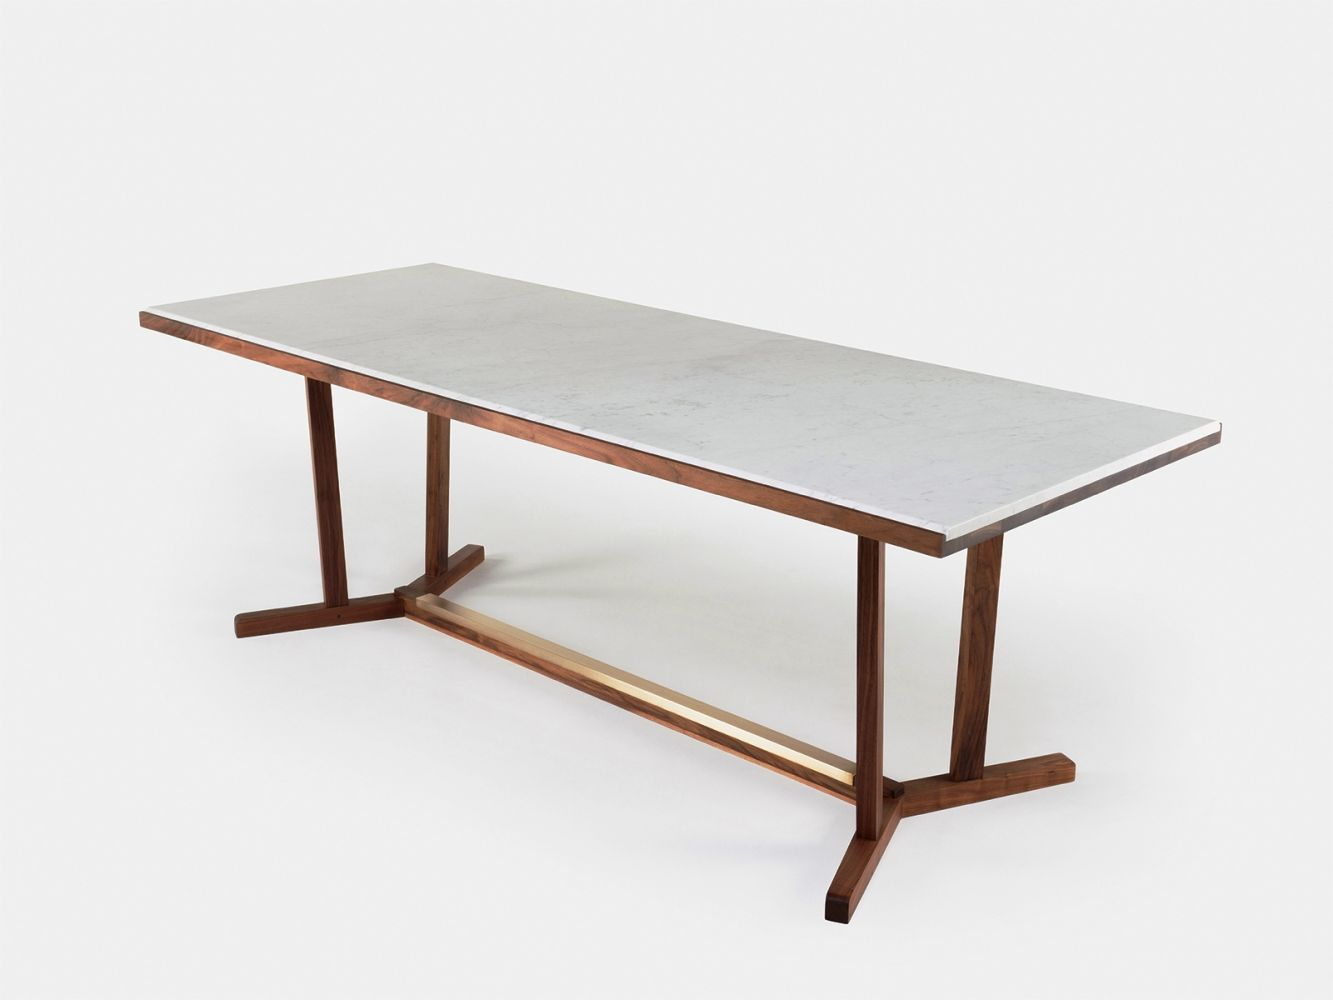 Shaker Dining Table by Neri&Hu in walnut and marble